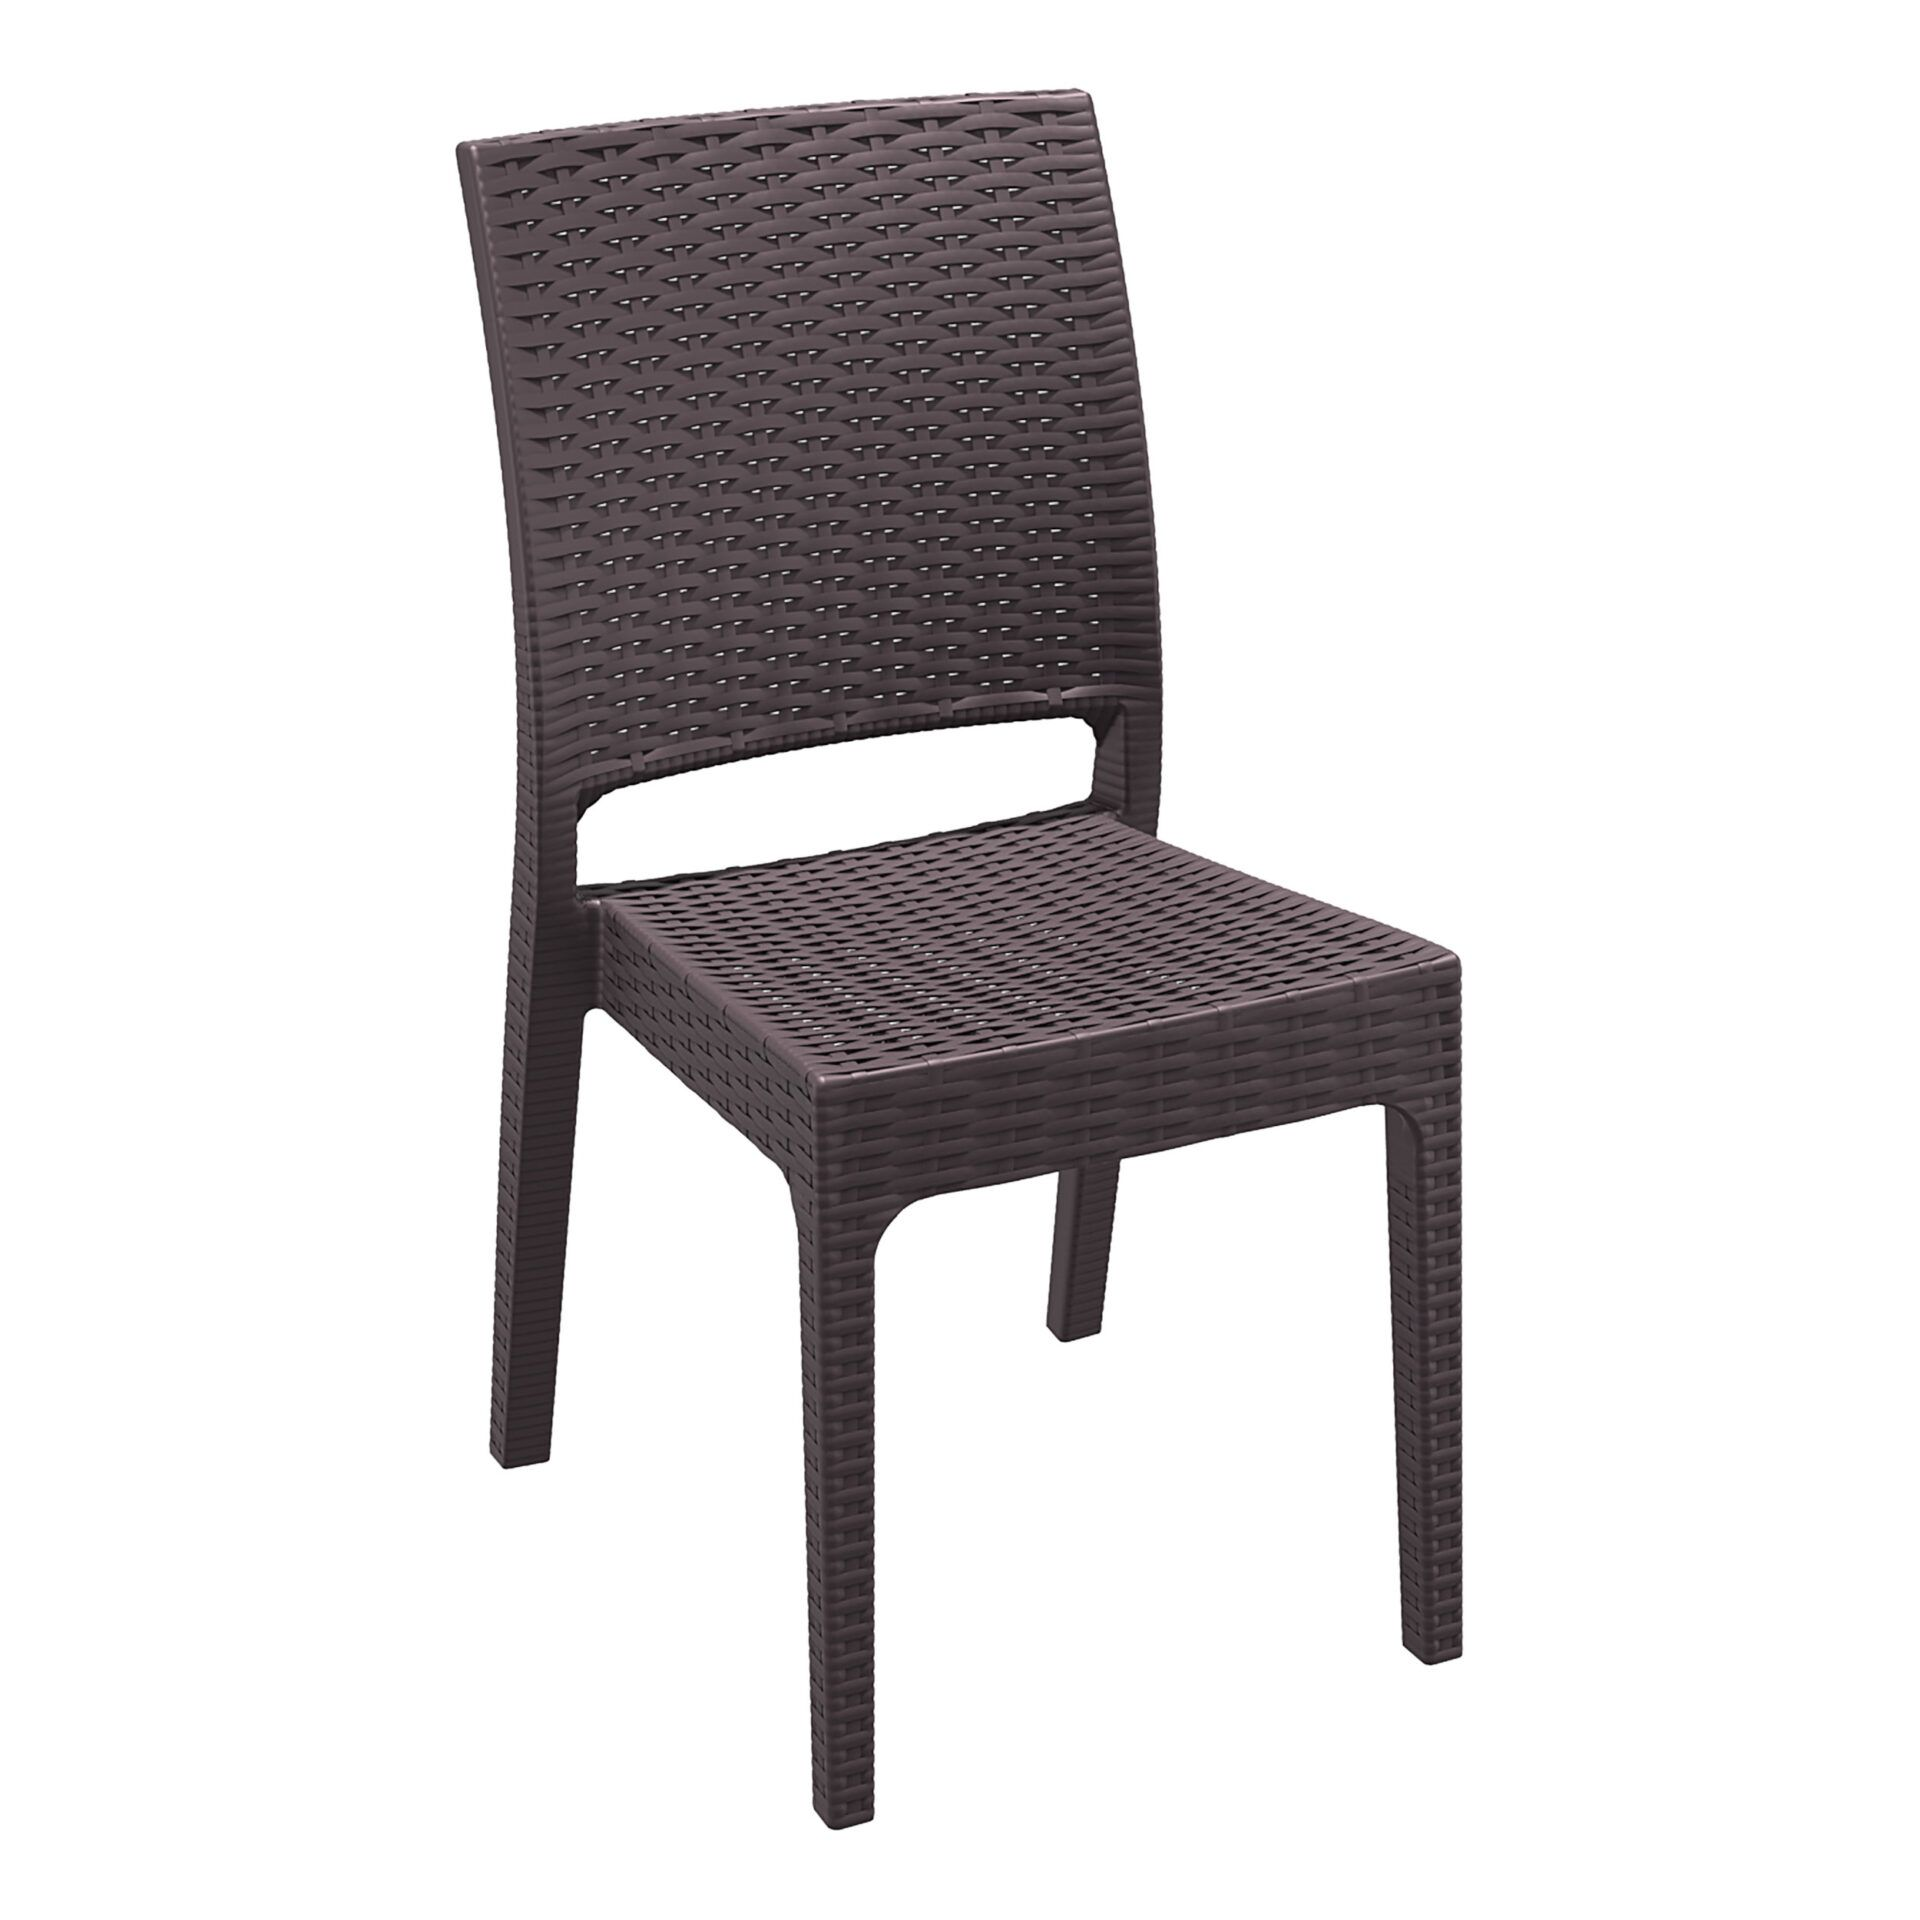 resin rattan dining florida chair brown front side